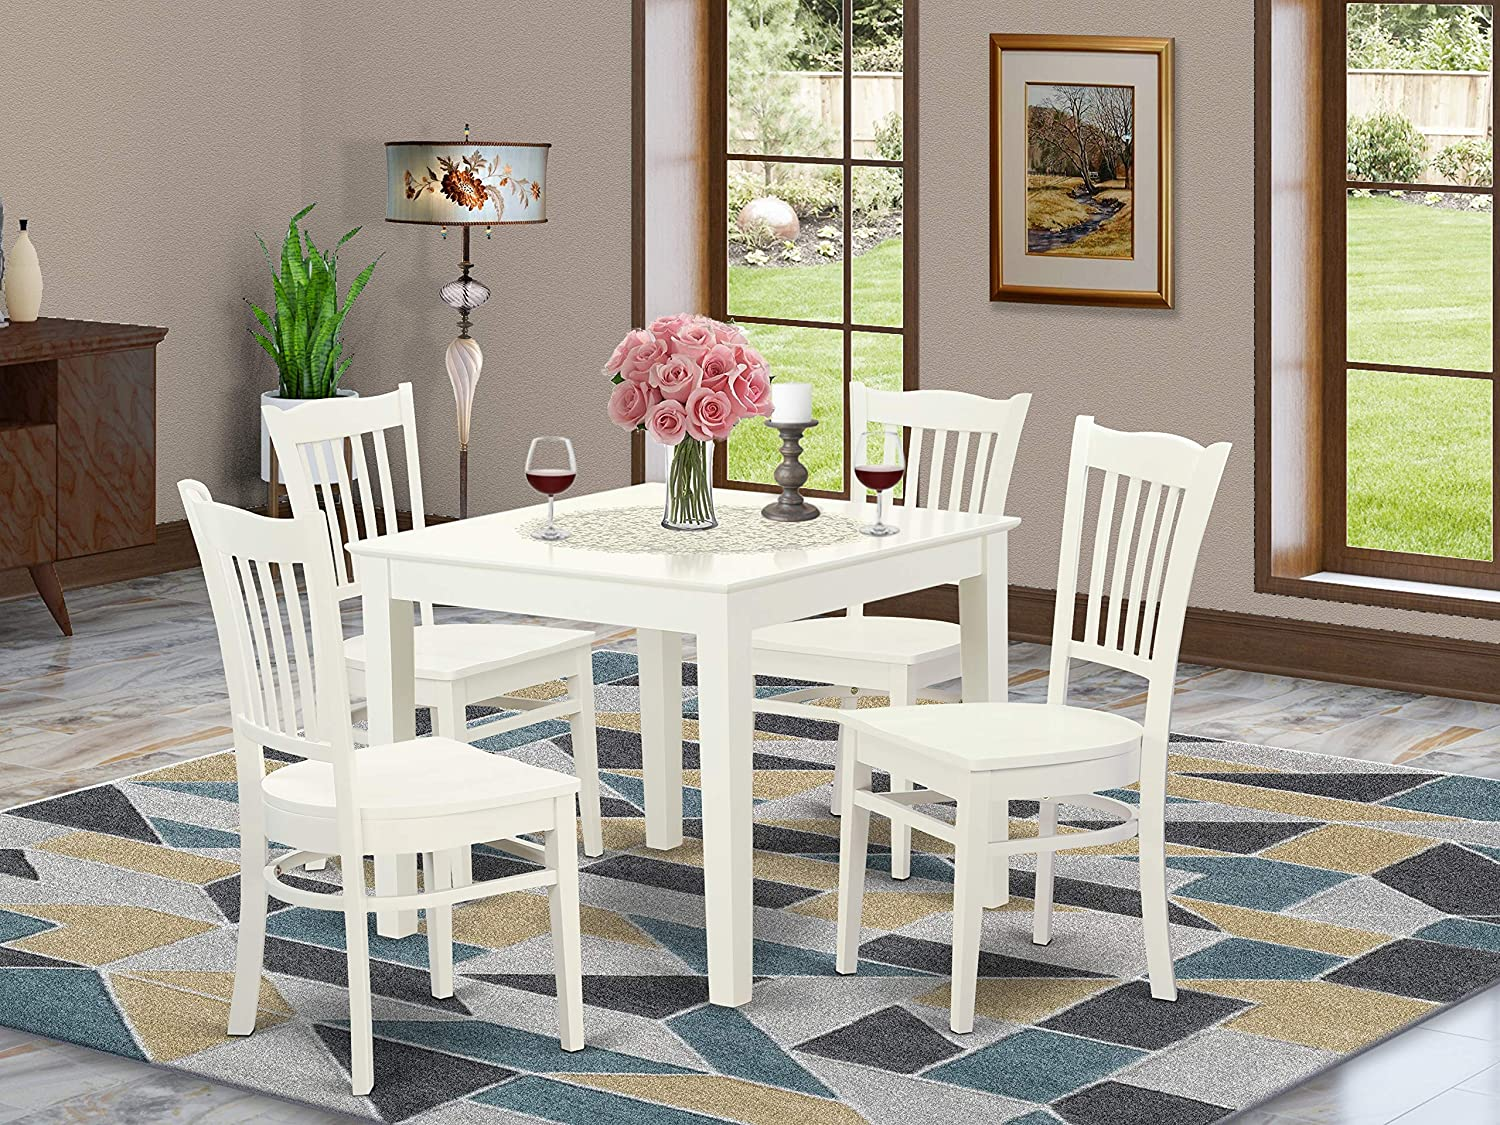 9 PC Kitchen Table and 9 Wood Dining Chairs in Linen White